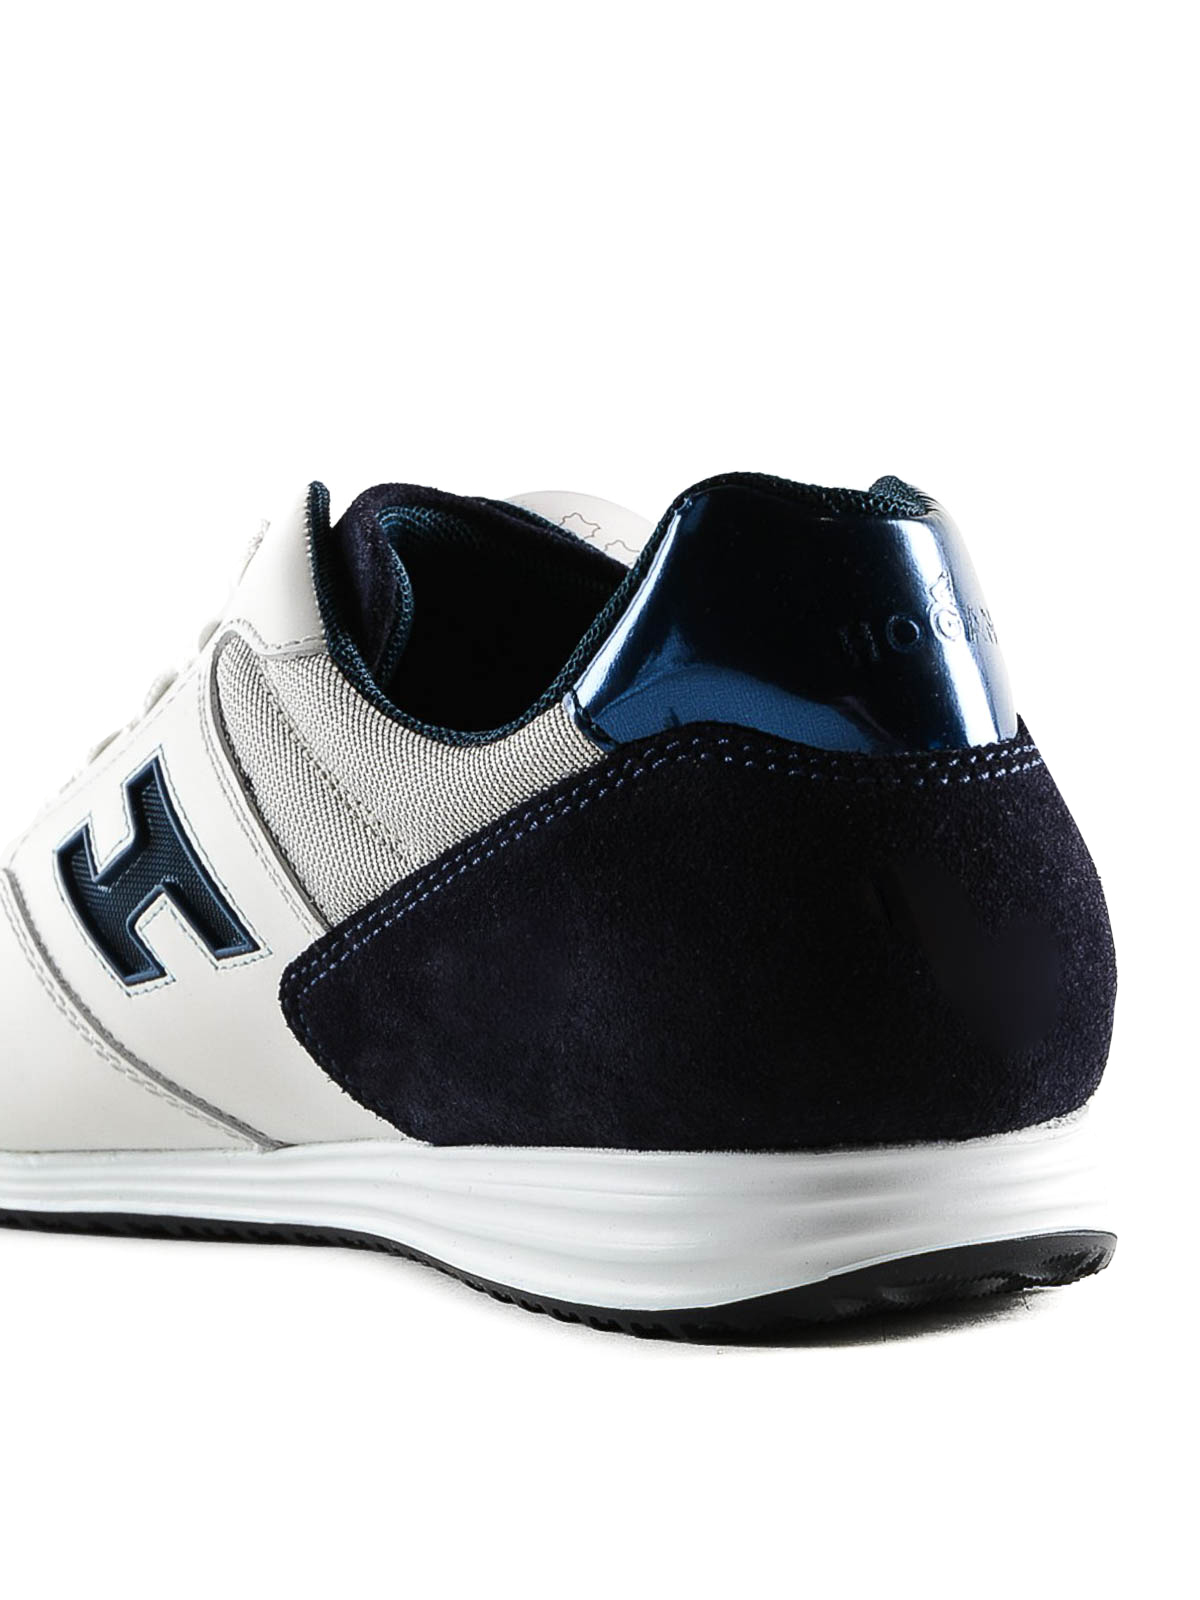 Hogan - Olympia X white and blue leather sneakers - trainers ...